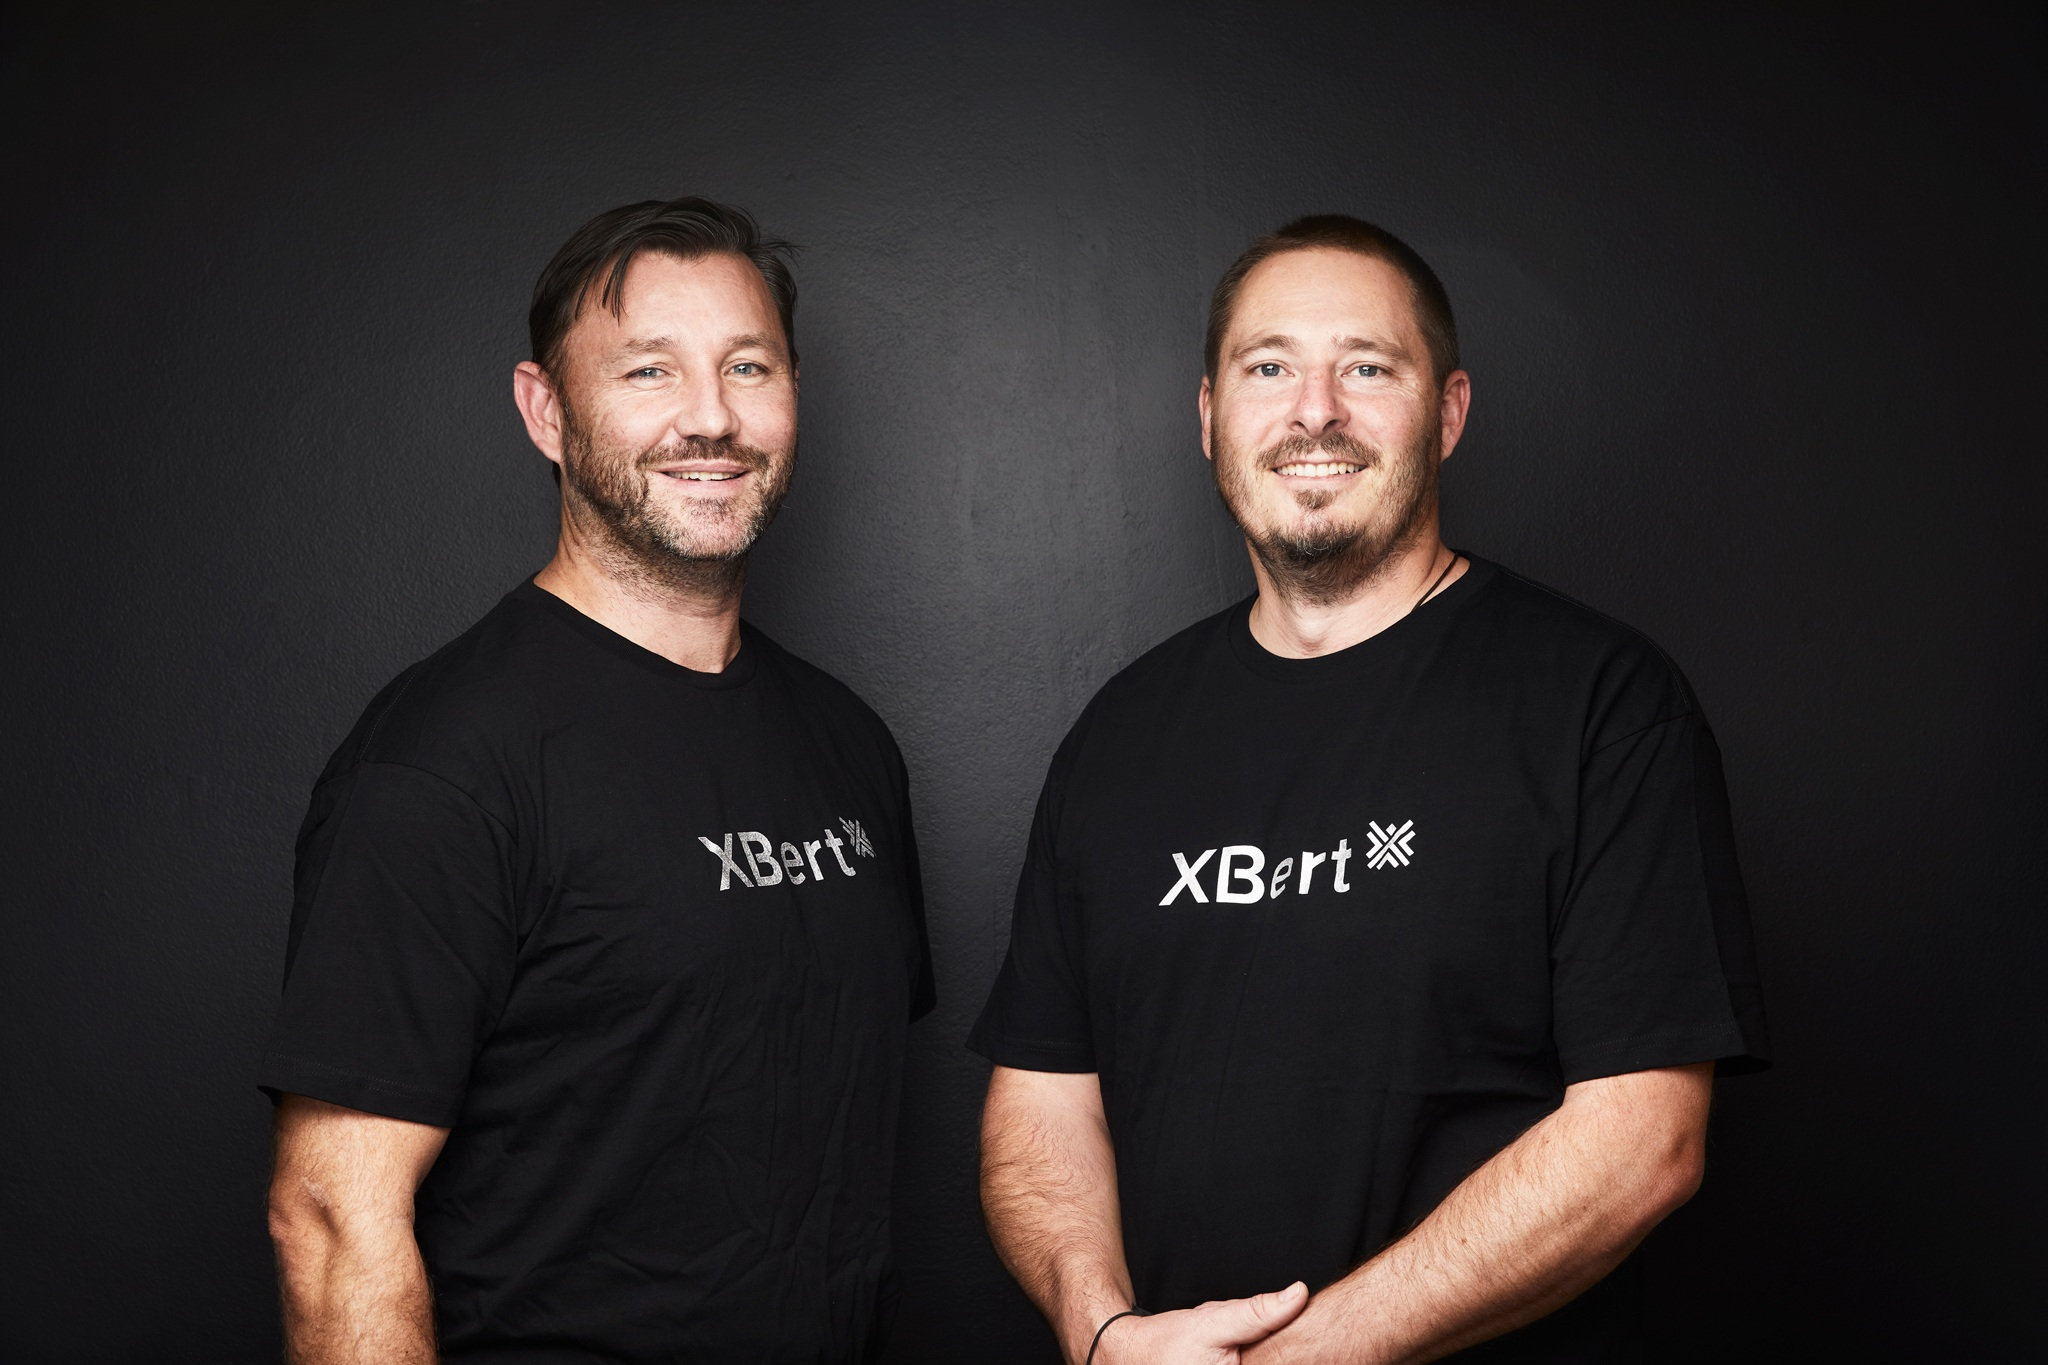 XBert Co-founders Aaron Wittman and Troy Brown